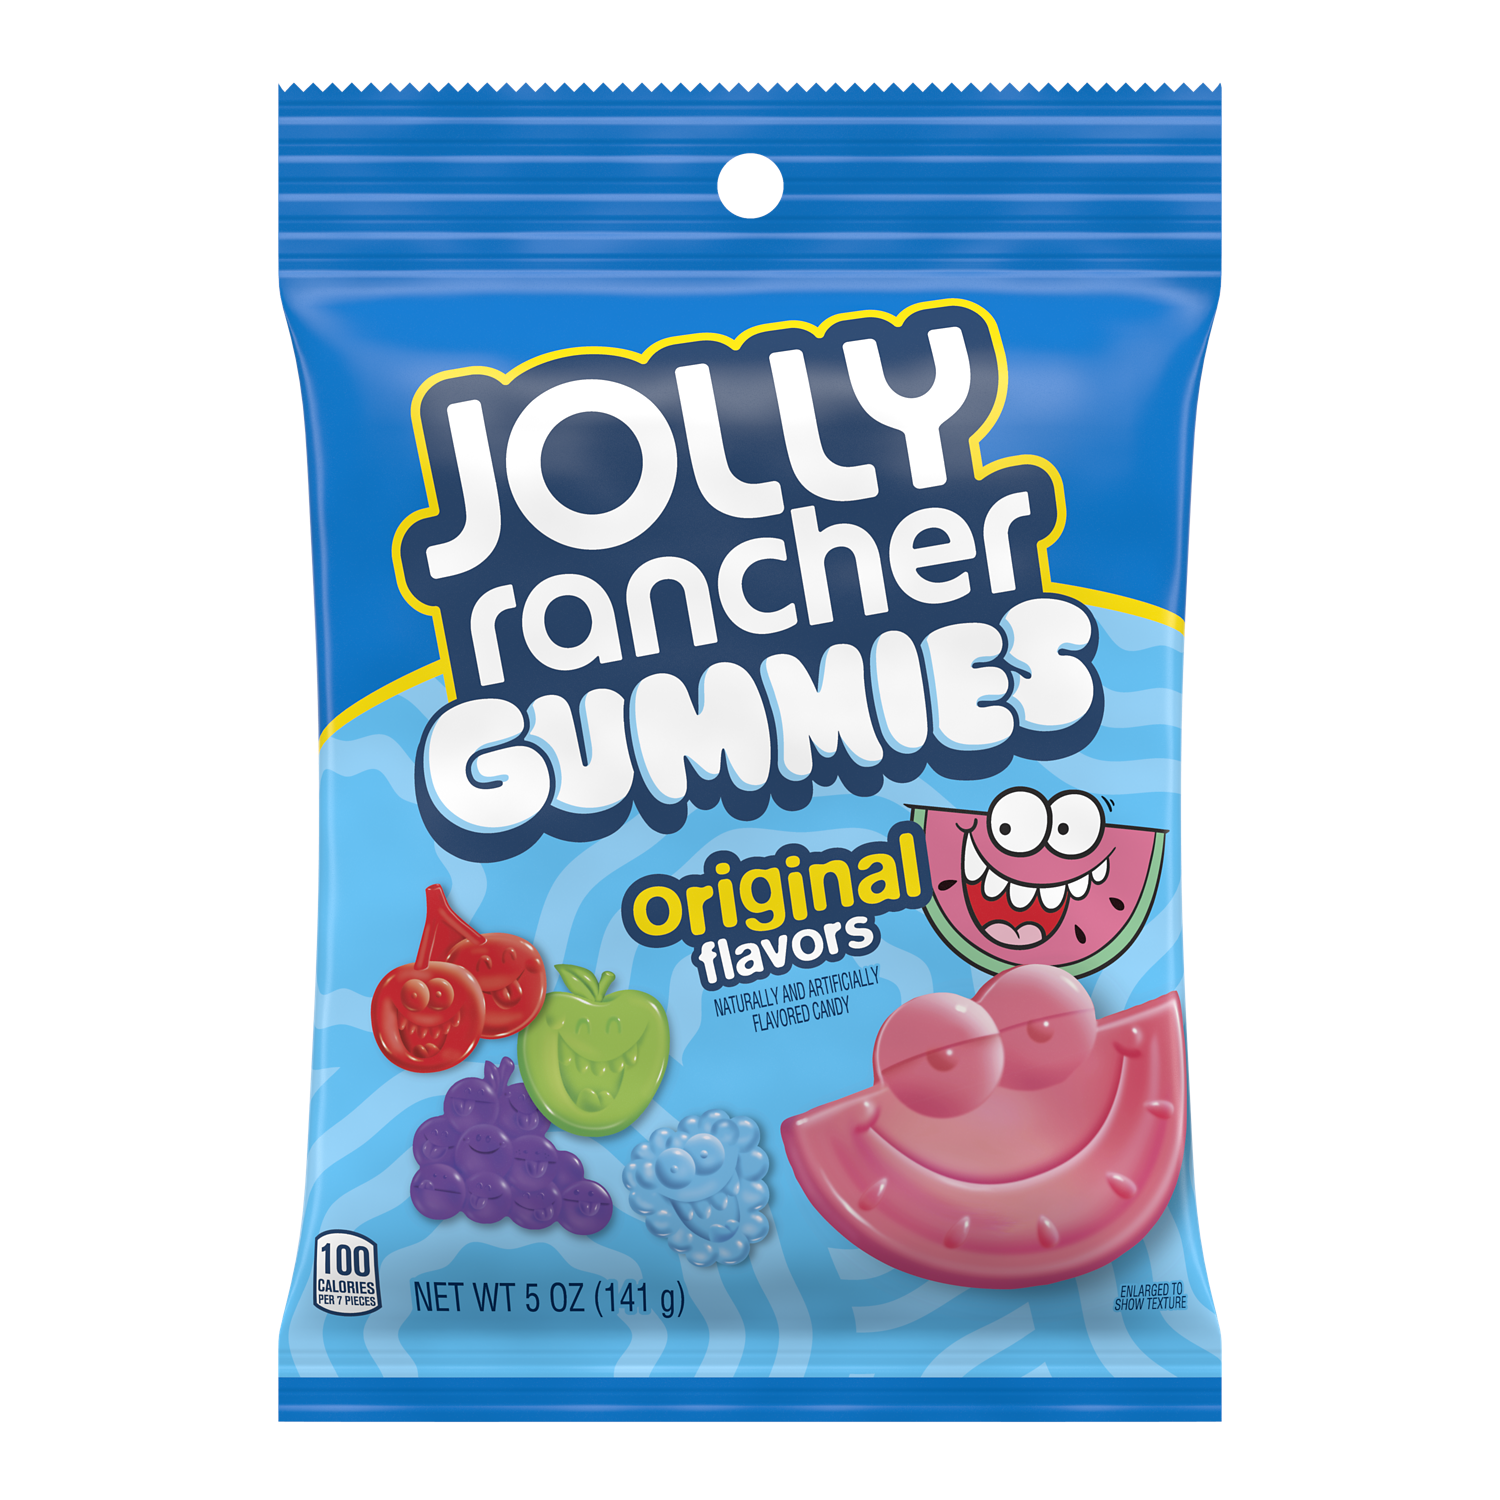 JOLLY RANCHER Original Flavors Gummies, 5 oz bag - Front of Package